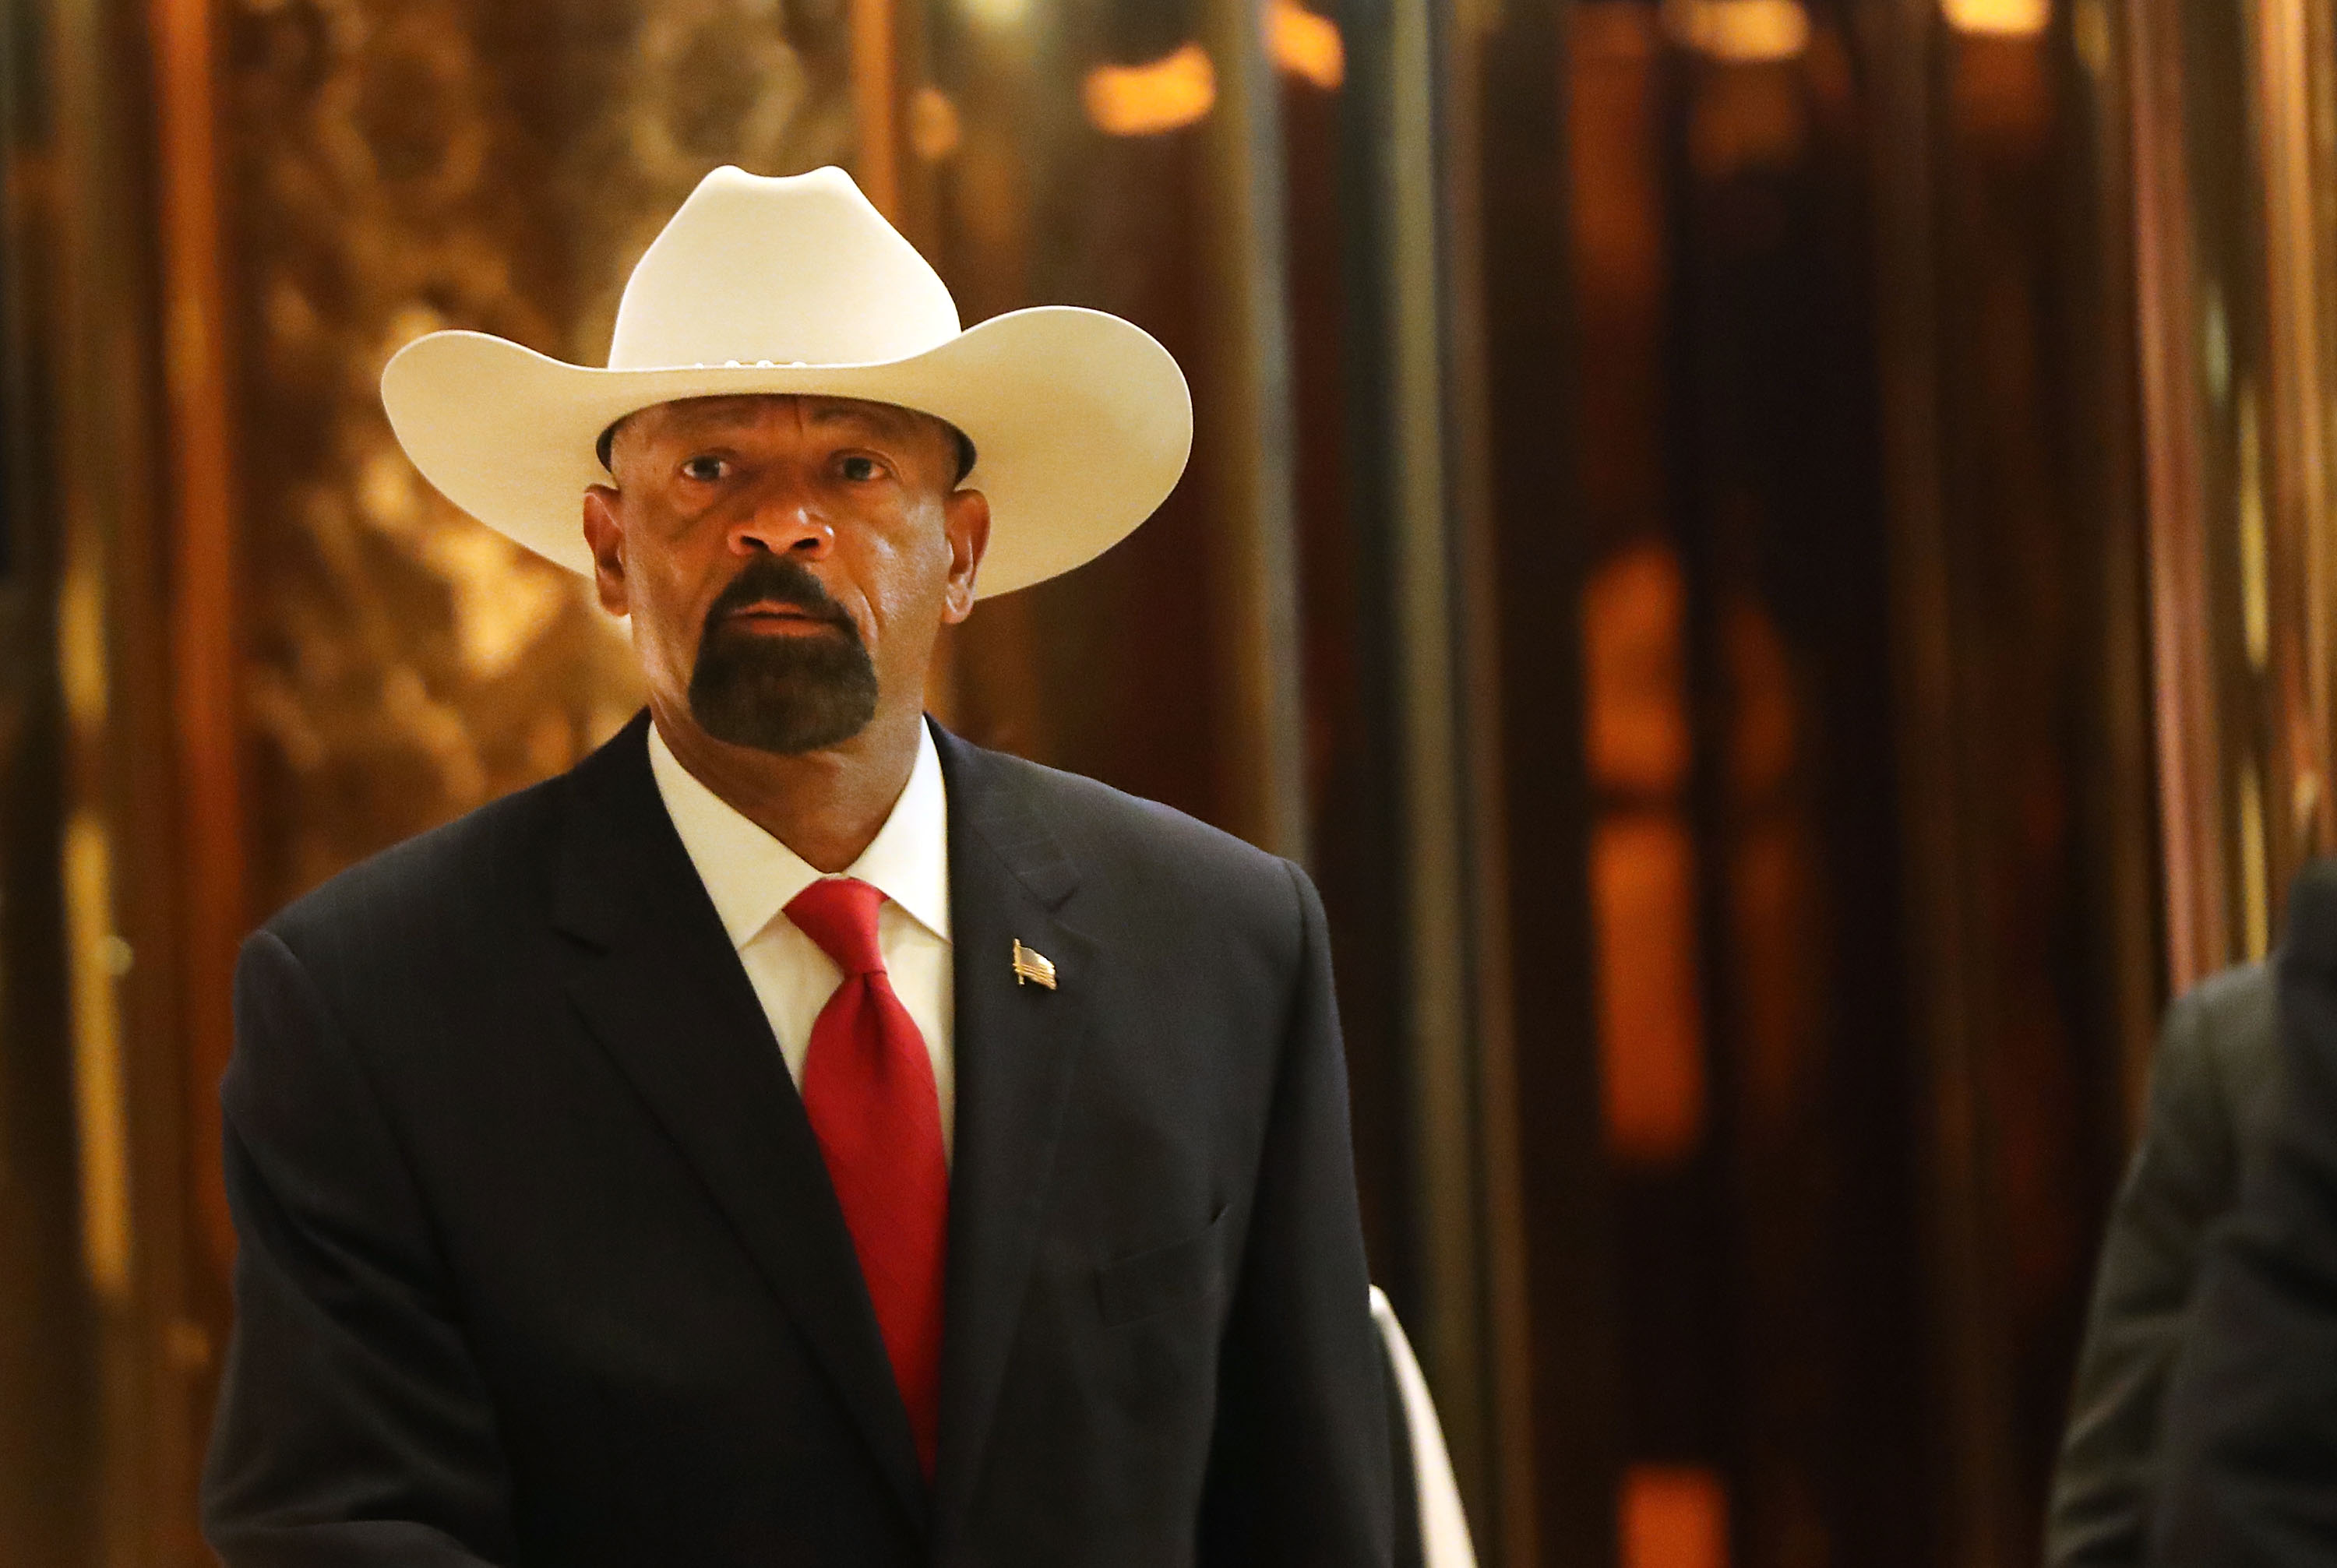 Notorious Trump supporter David Clarke steps down as Milwaukee County's sheriff